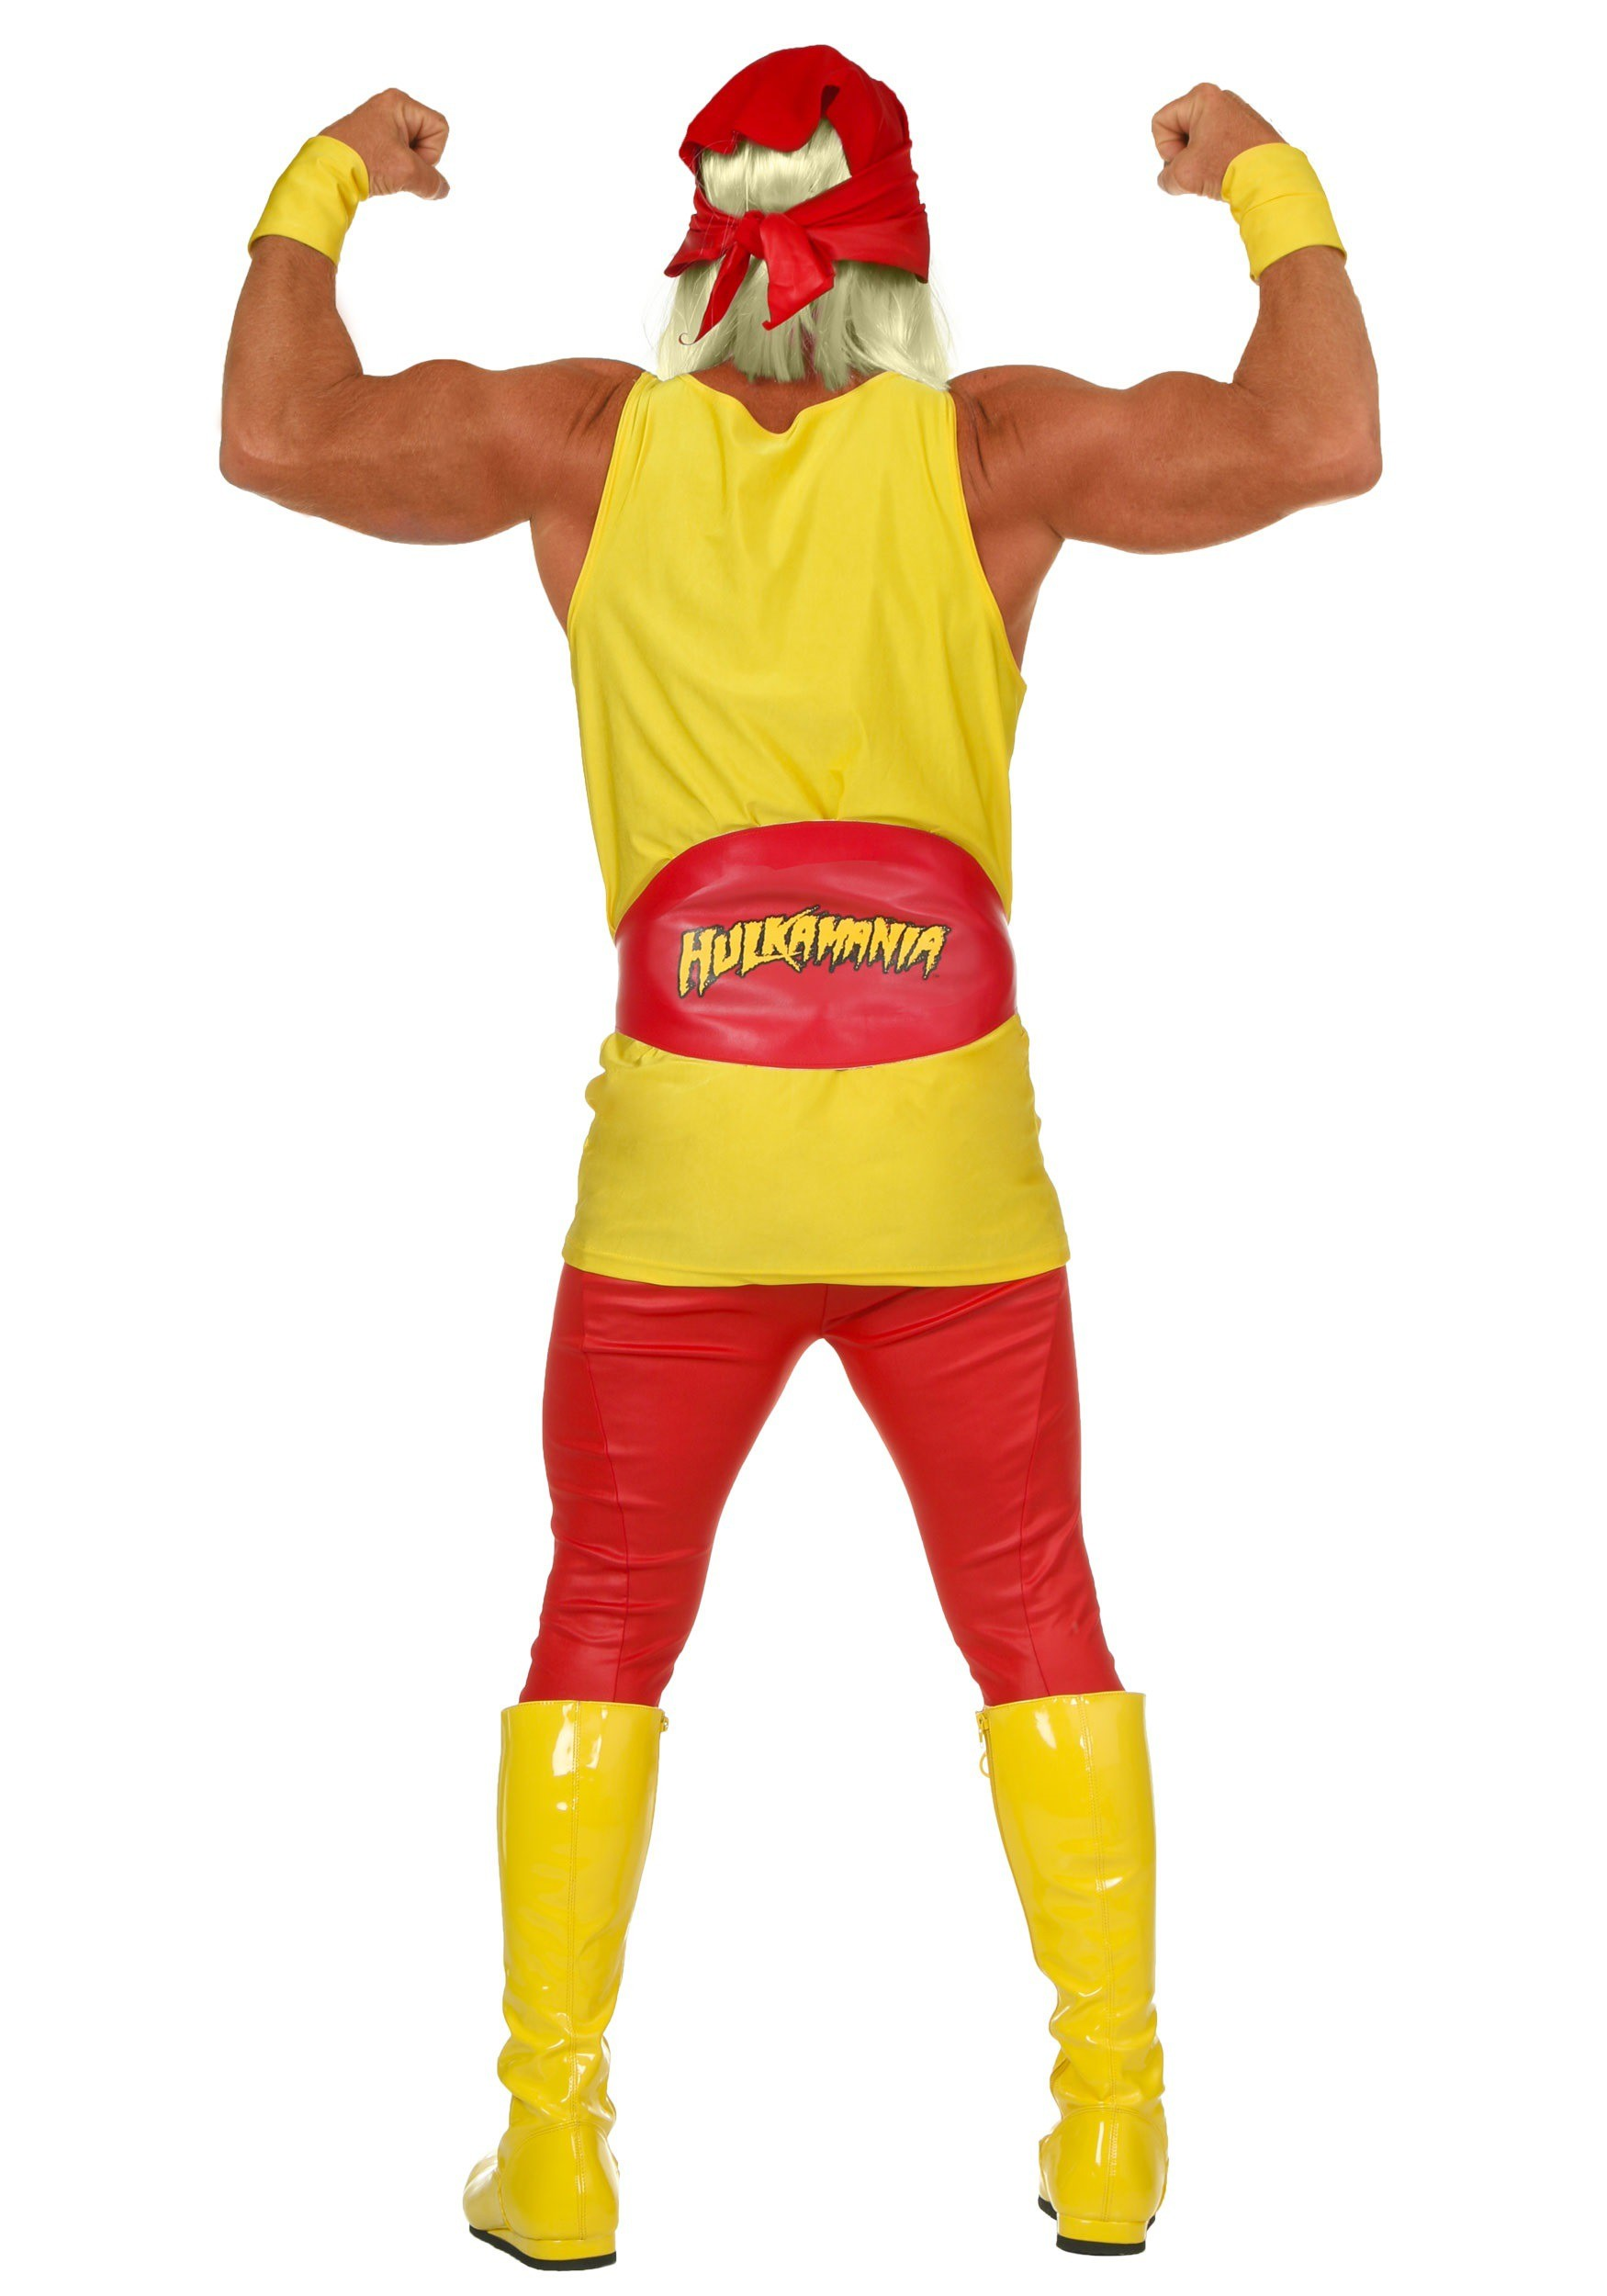 best hulk hogan costume